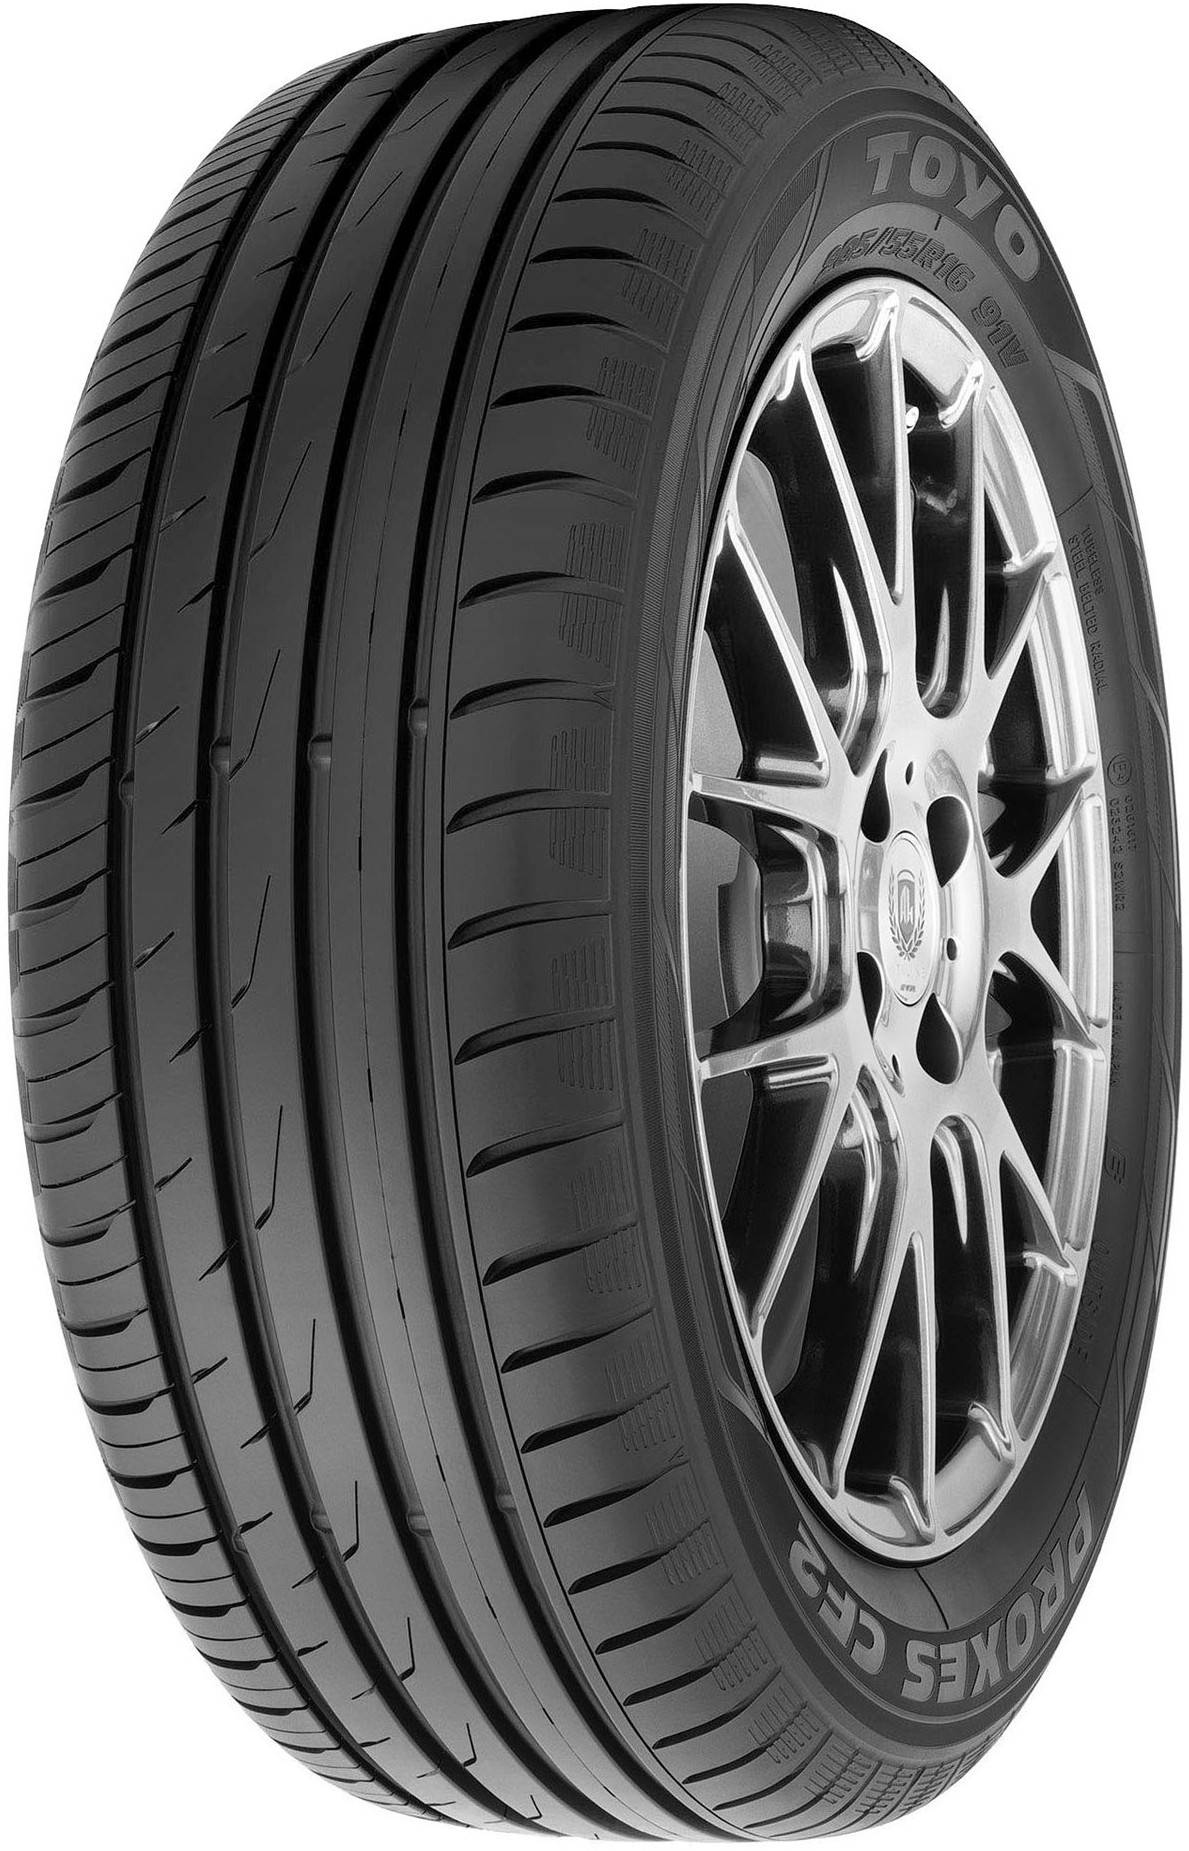 TOYO Proxes CF2 SUV 215/60R17 96H